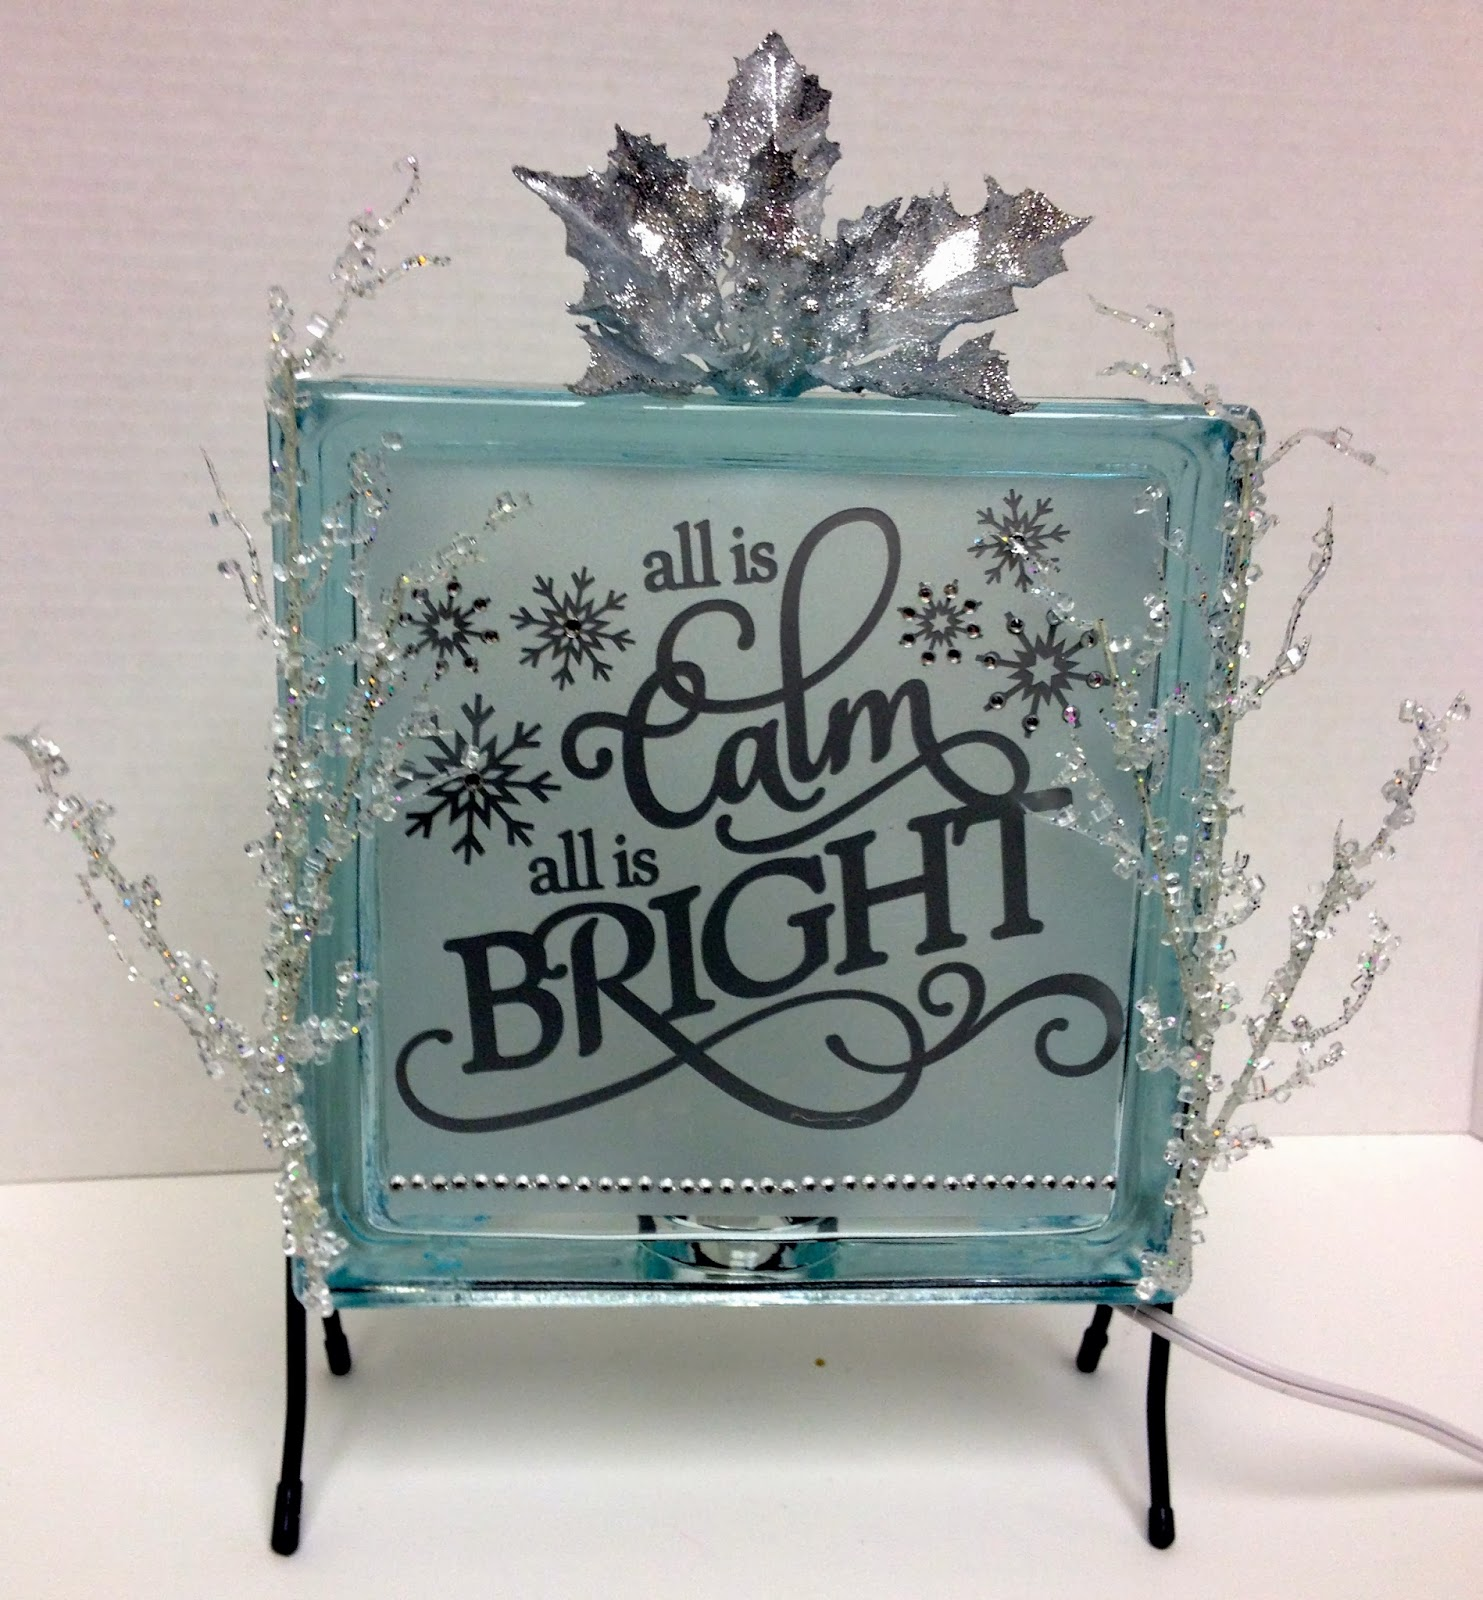 Glass block crafts projects - Glass Block Crafts Ideas I Truly Can Not Get Enough Of These Glass Block Projects